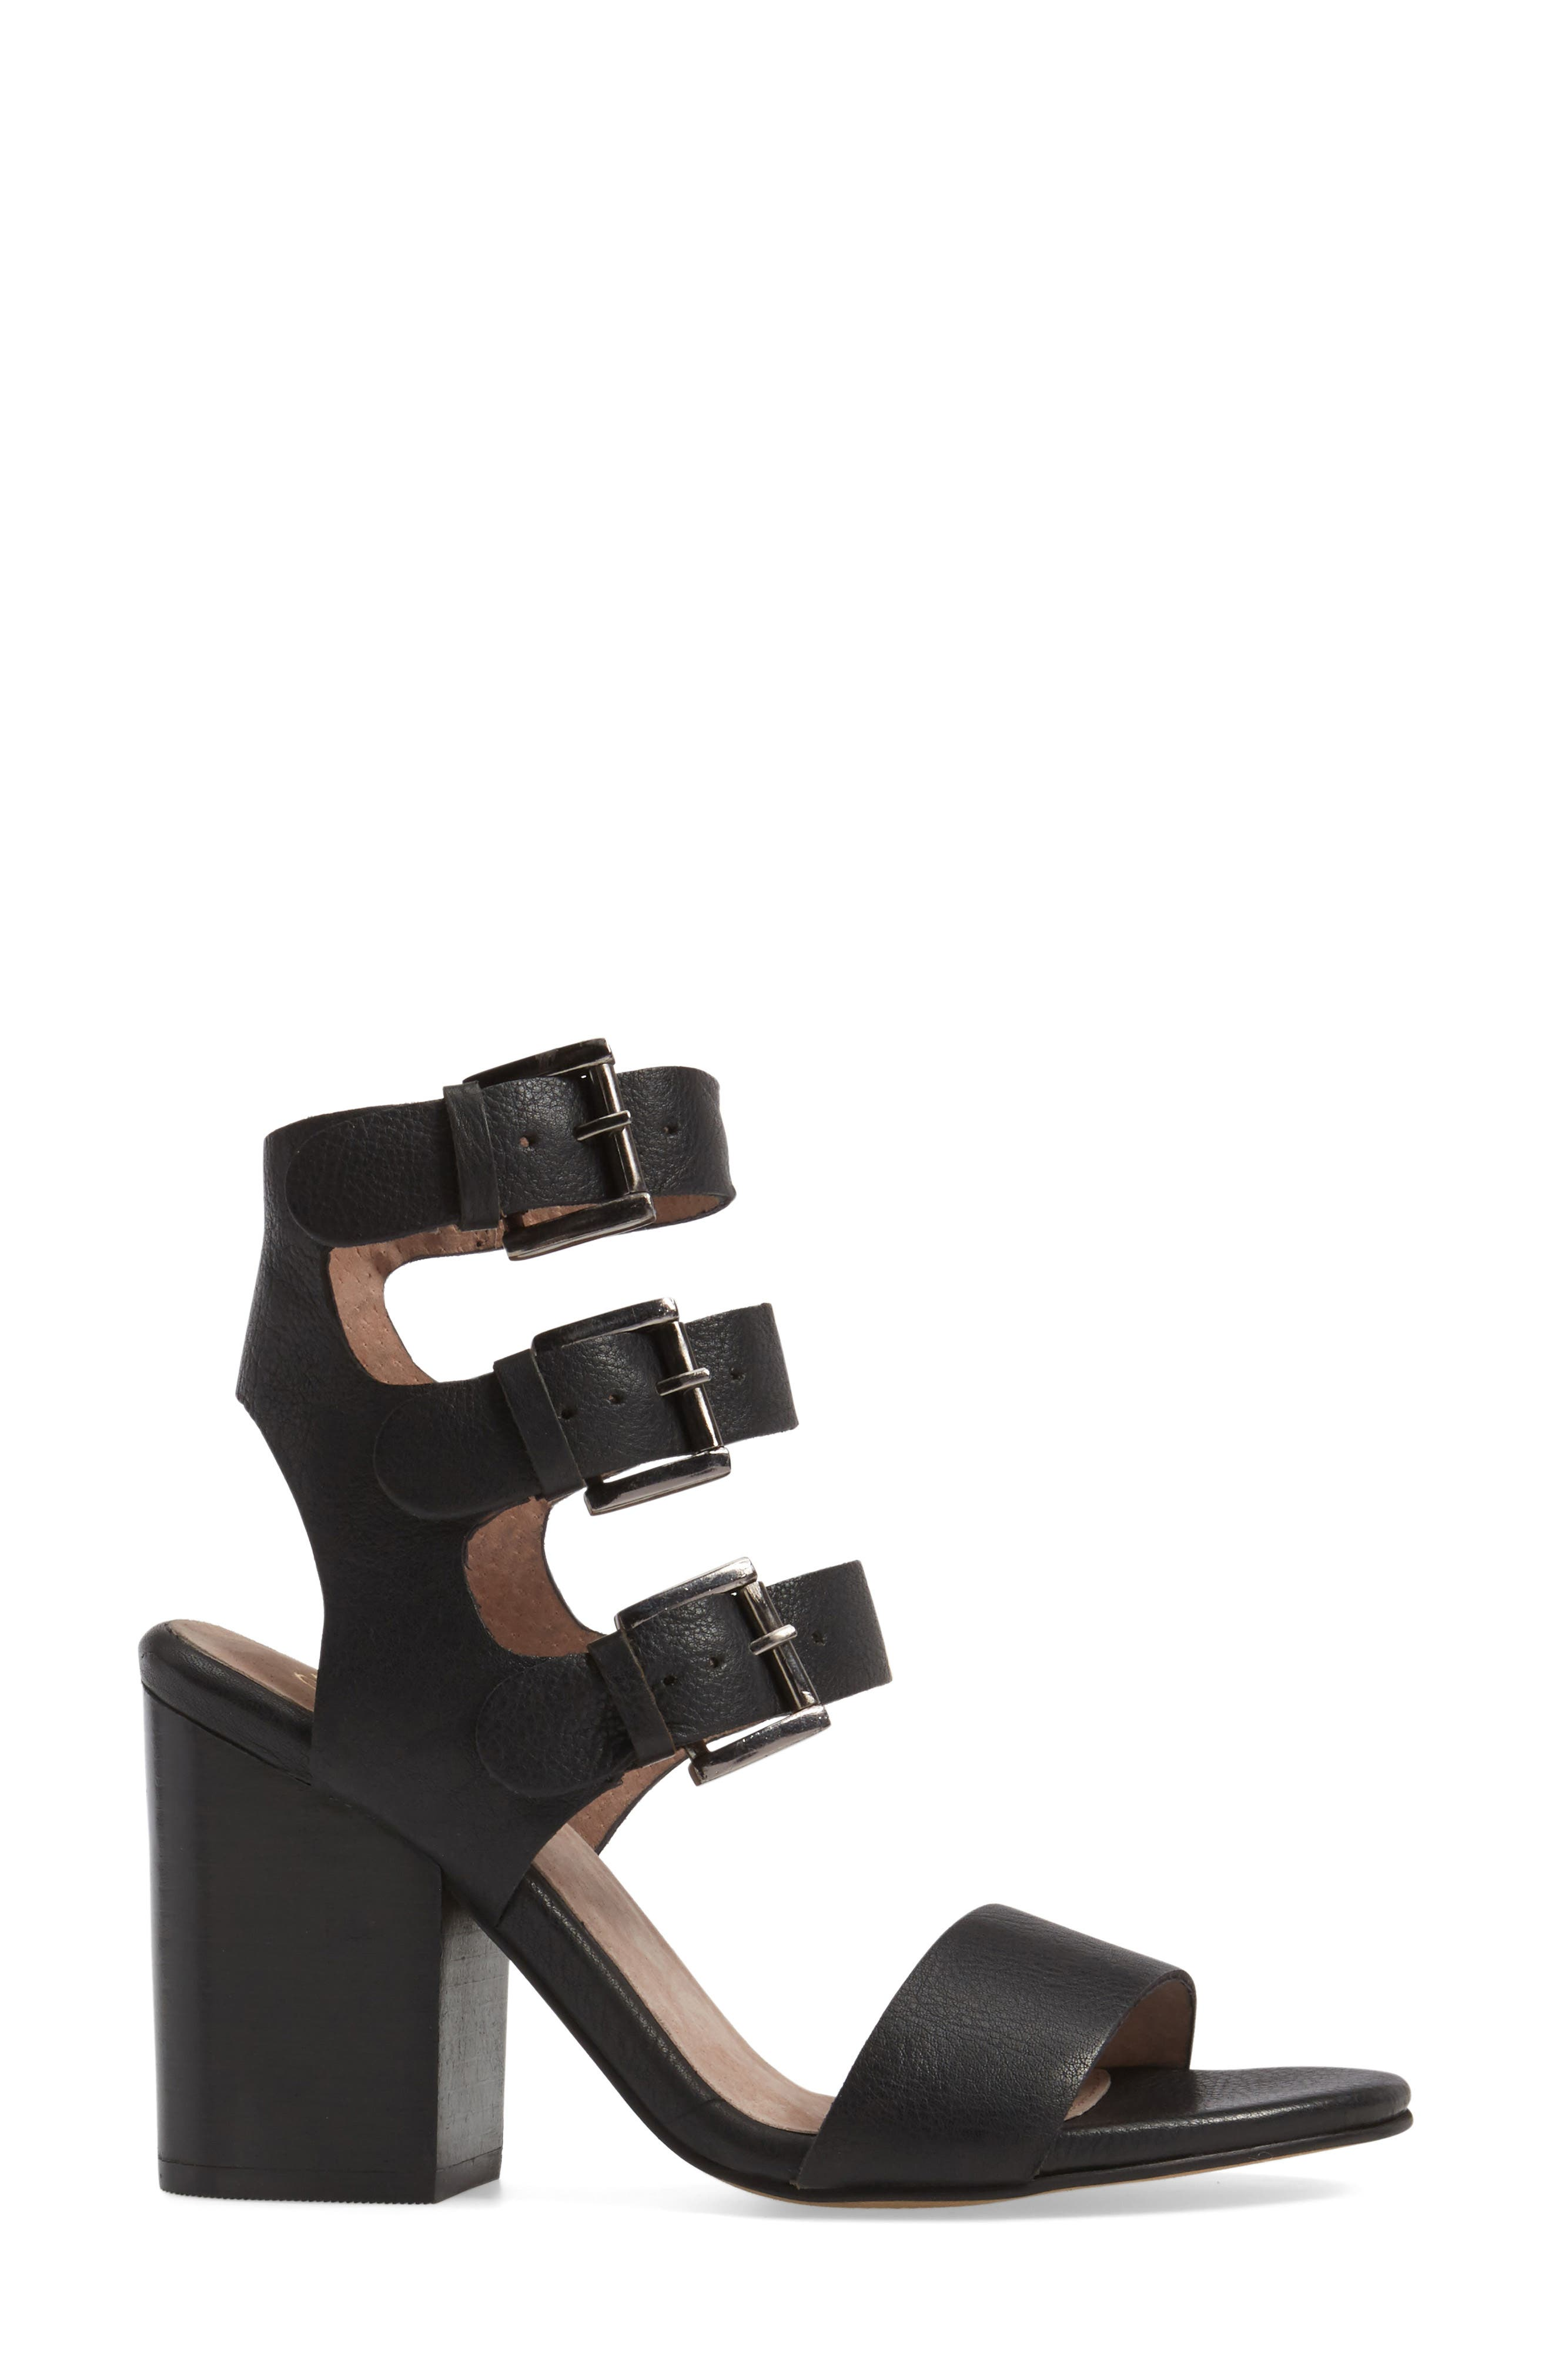 Dilly Dally Sandal,                             Alternate thumbnail 3, color,                             001